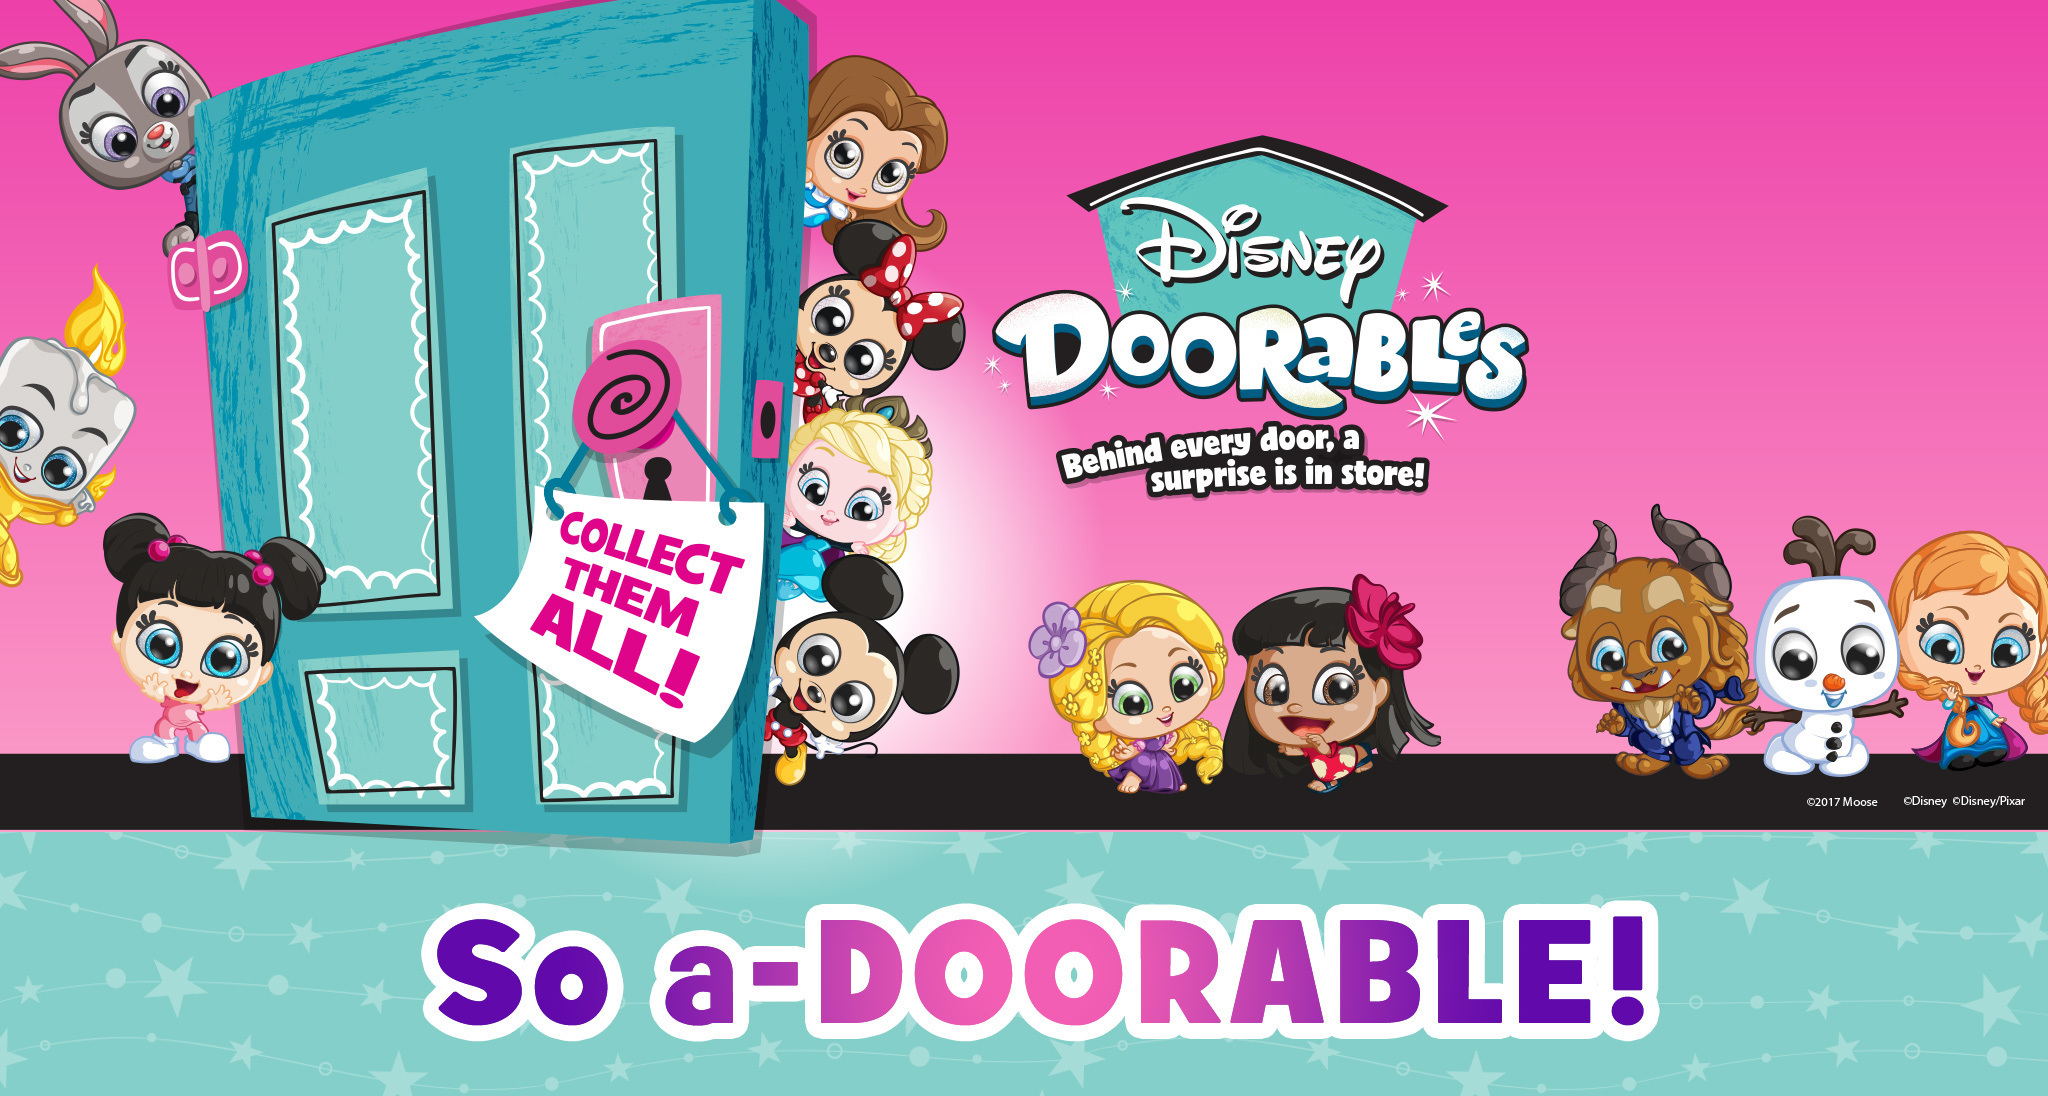 Image of Disney Doorables logo with characters underneath including Beast, Olaf, Anna, Moana, Rapunzel and Mickey Mouse.